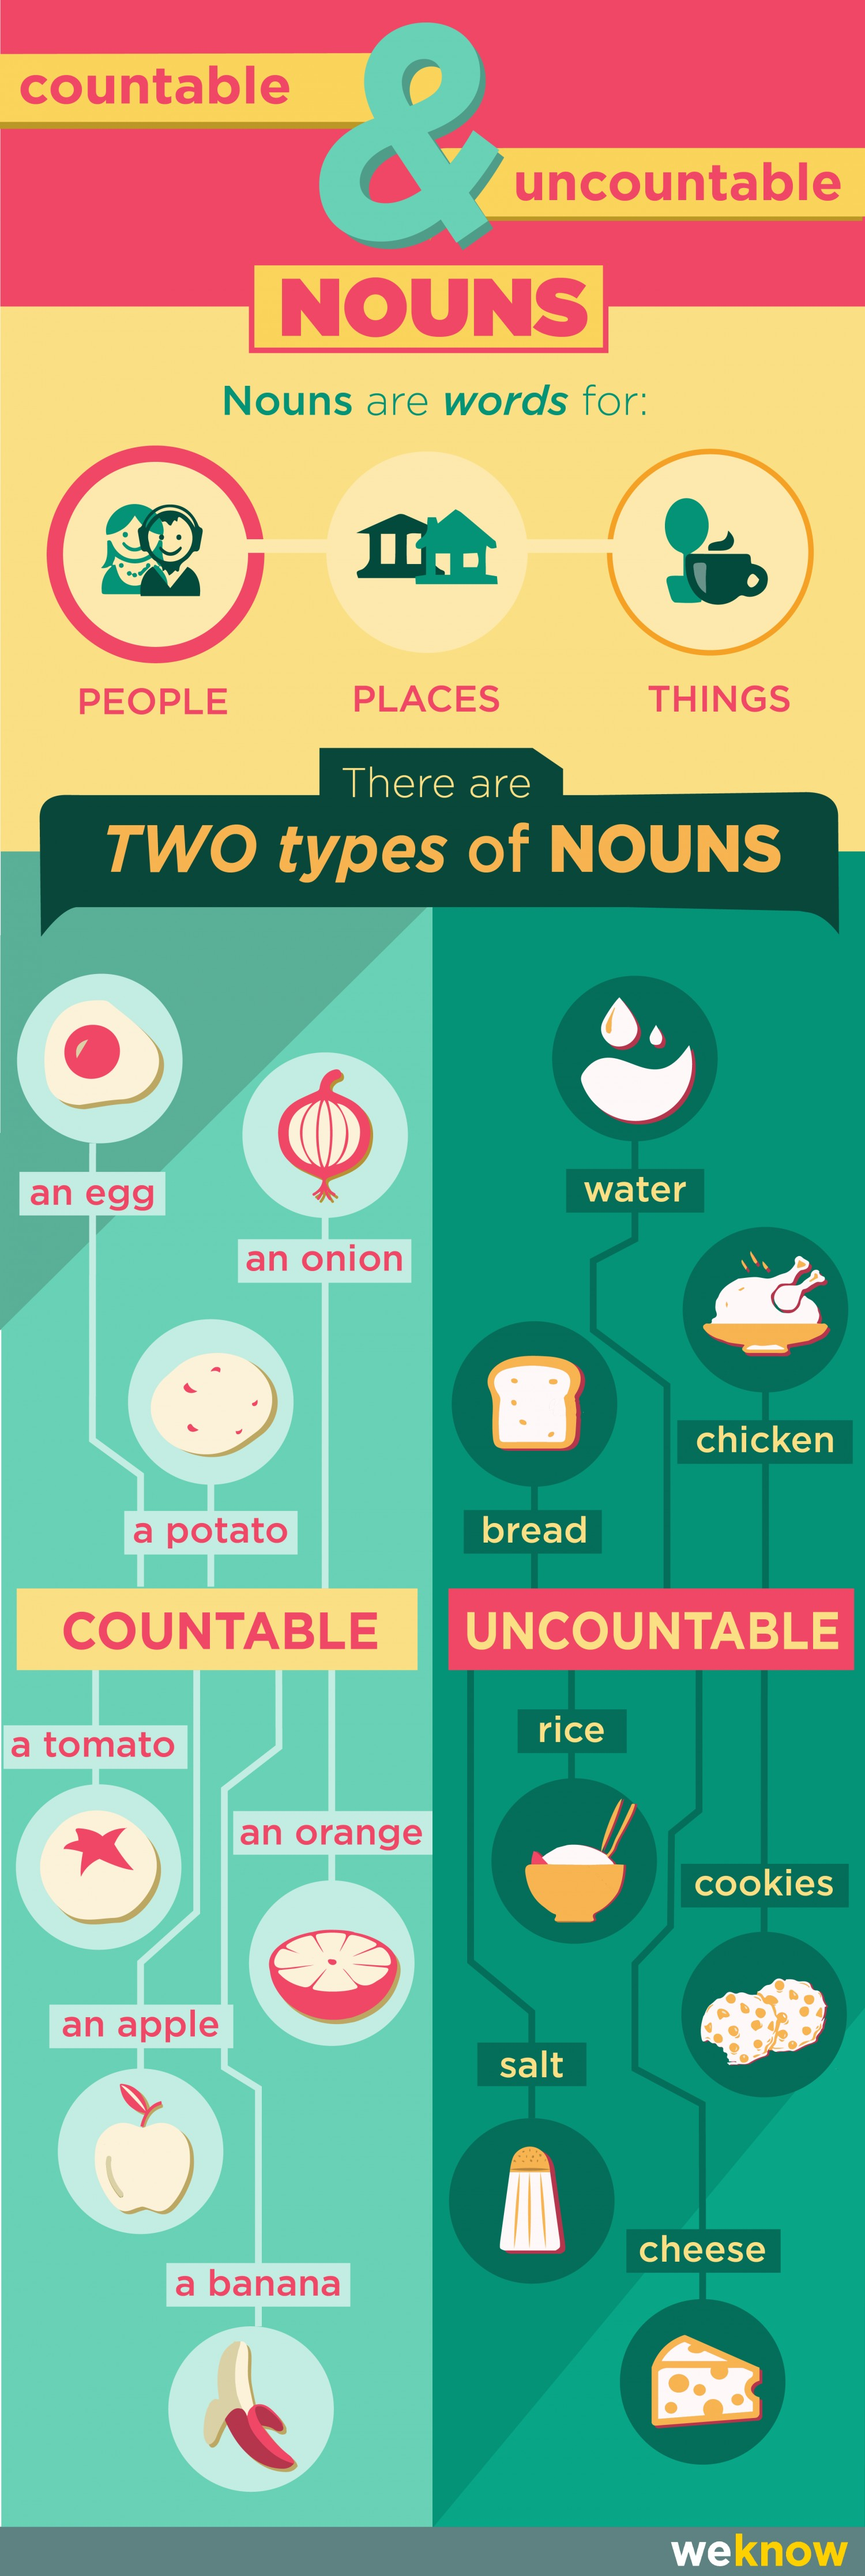 Countable and uncoutable nouns Infographic | Useful Classroom Images ...